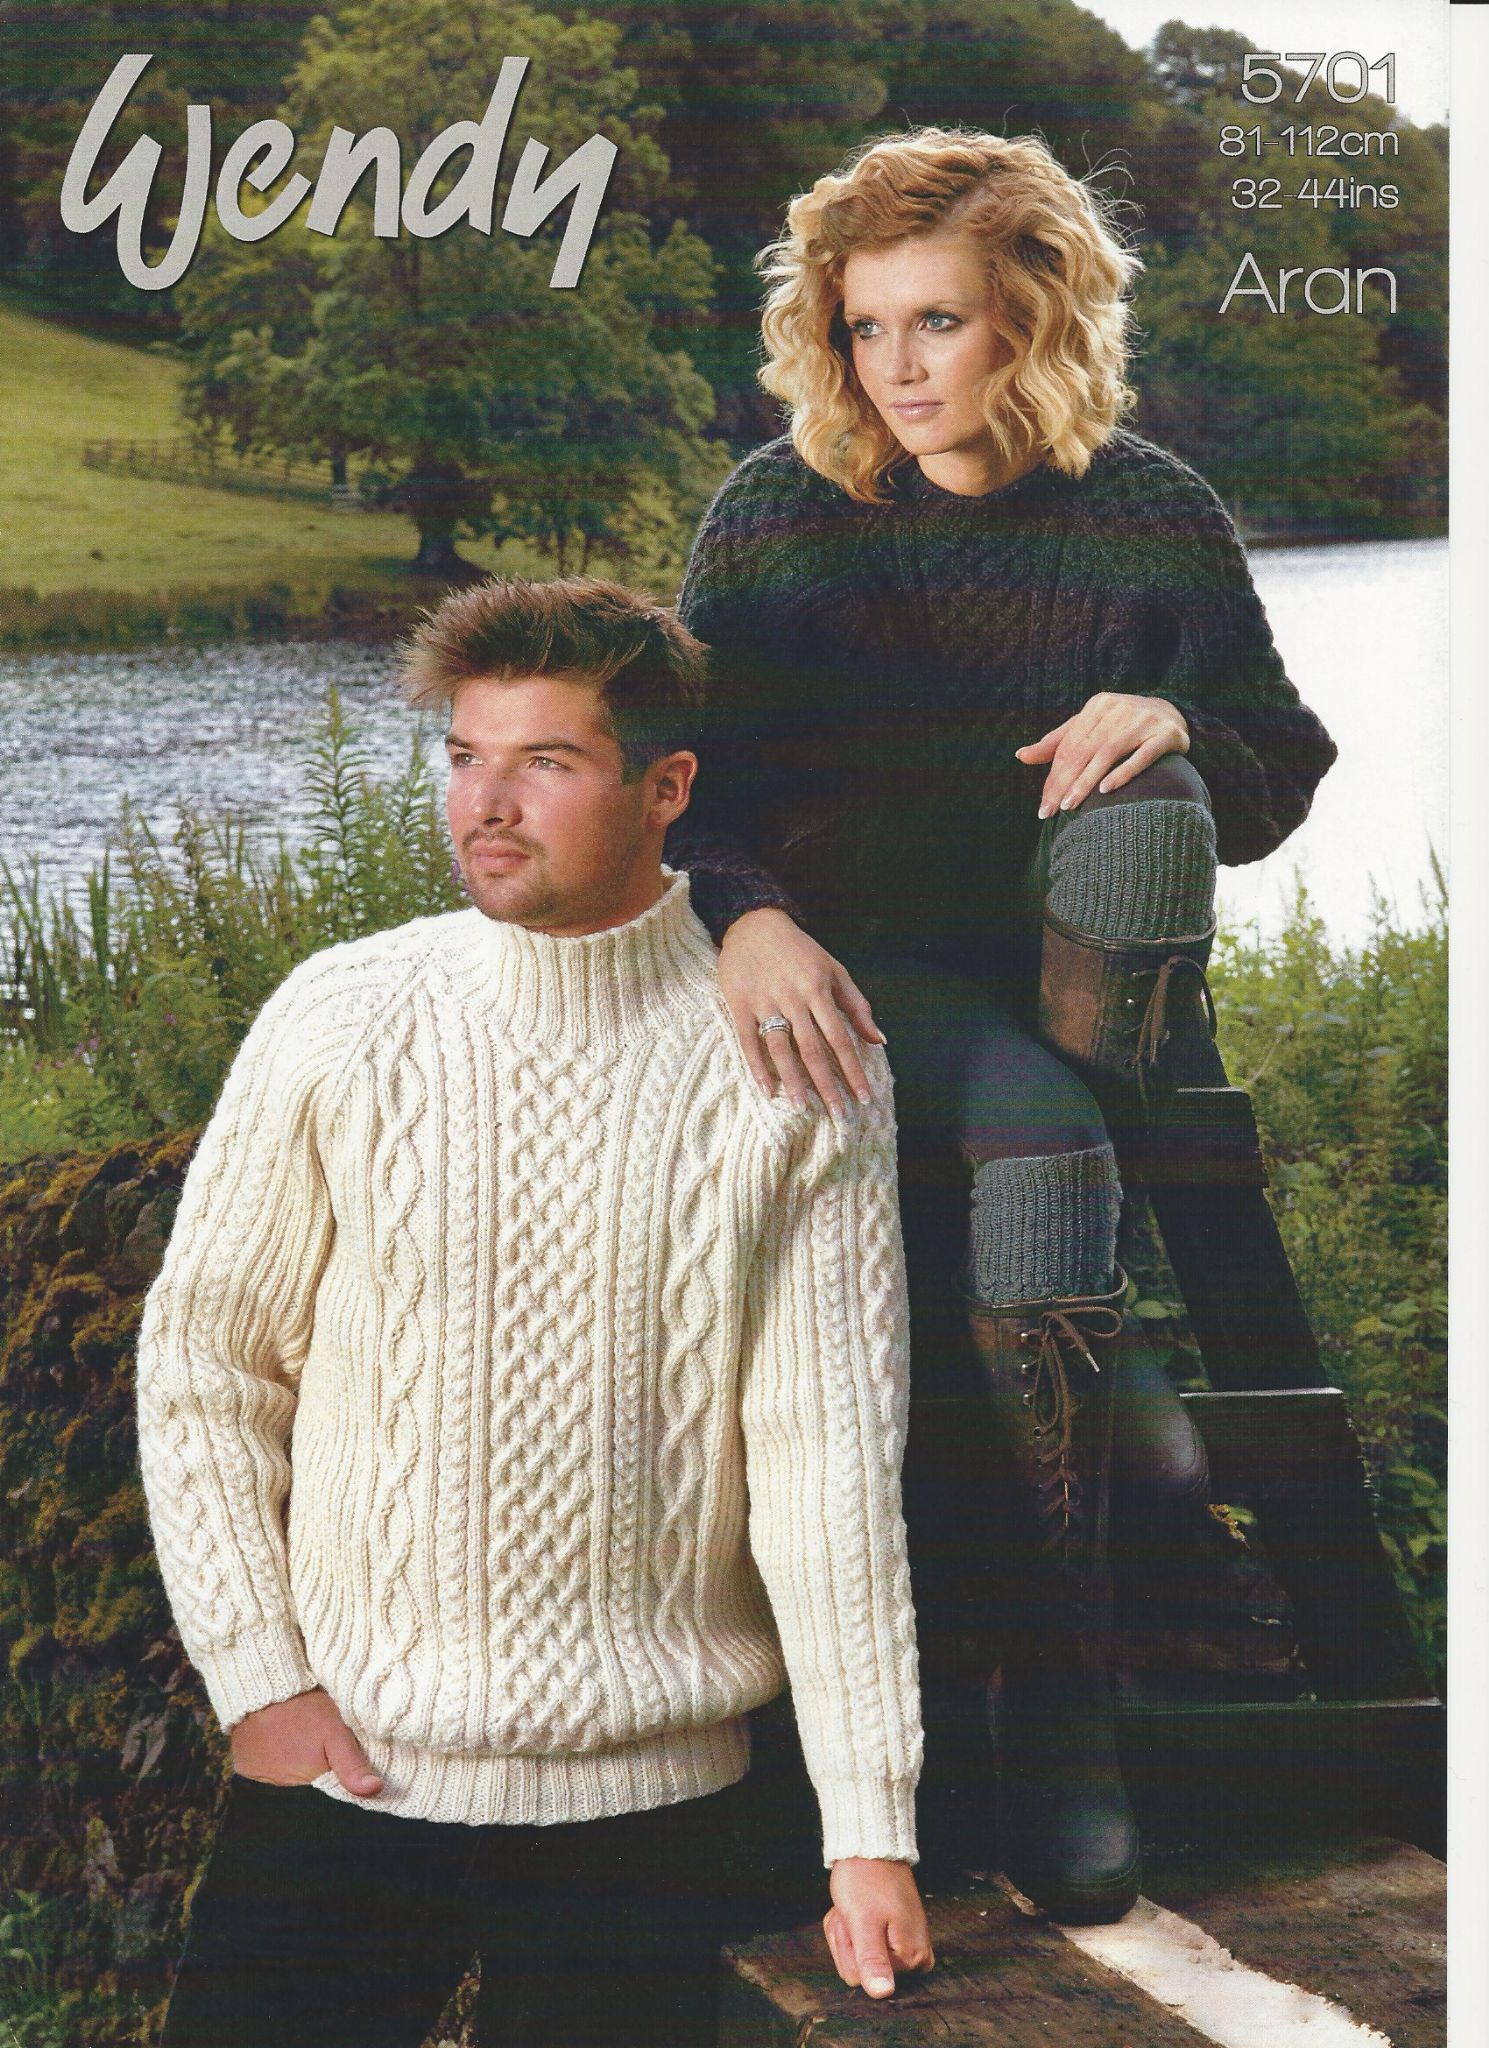 Aran Jumper Knitting Patterns Wendy Mens Ladies His Hers Sweaters Aran Knitting Pattern 5701